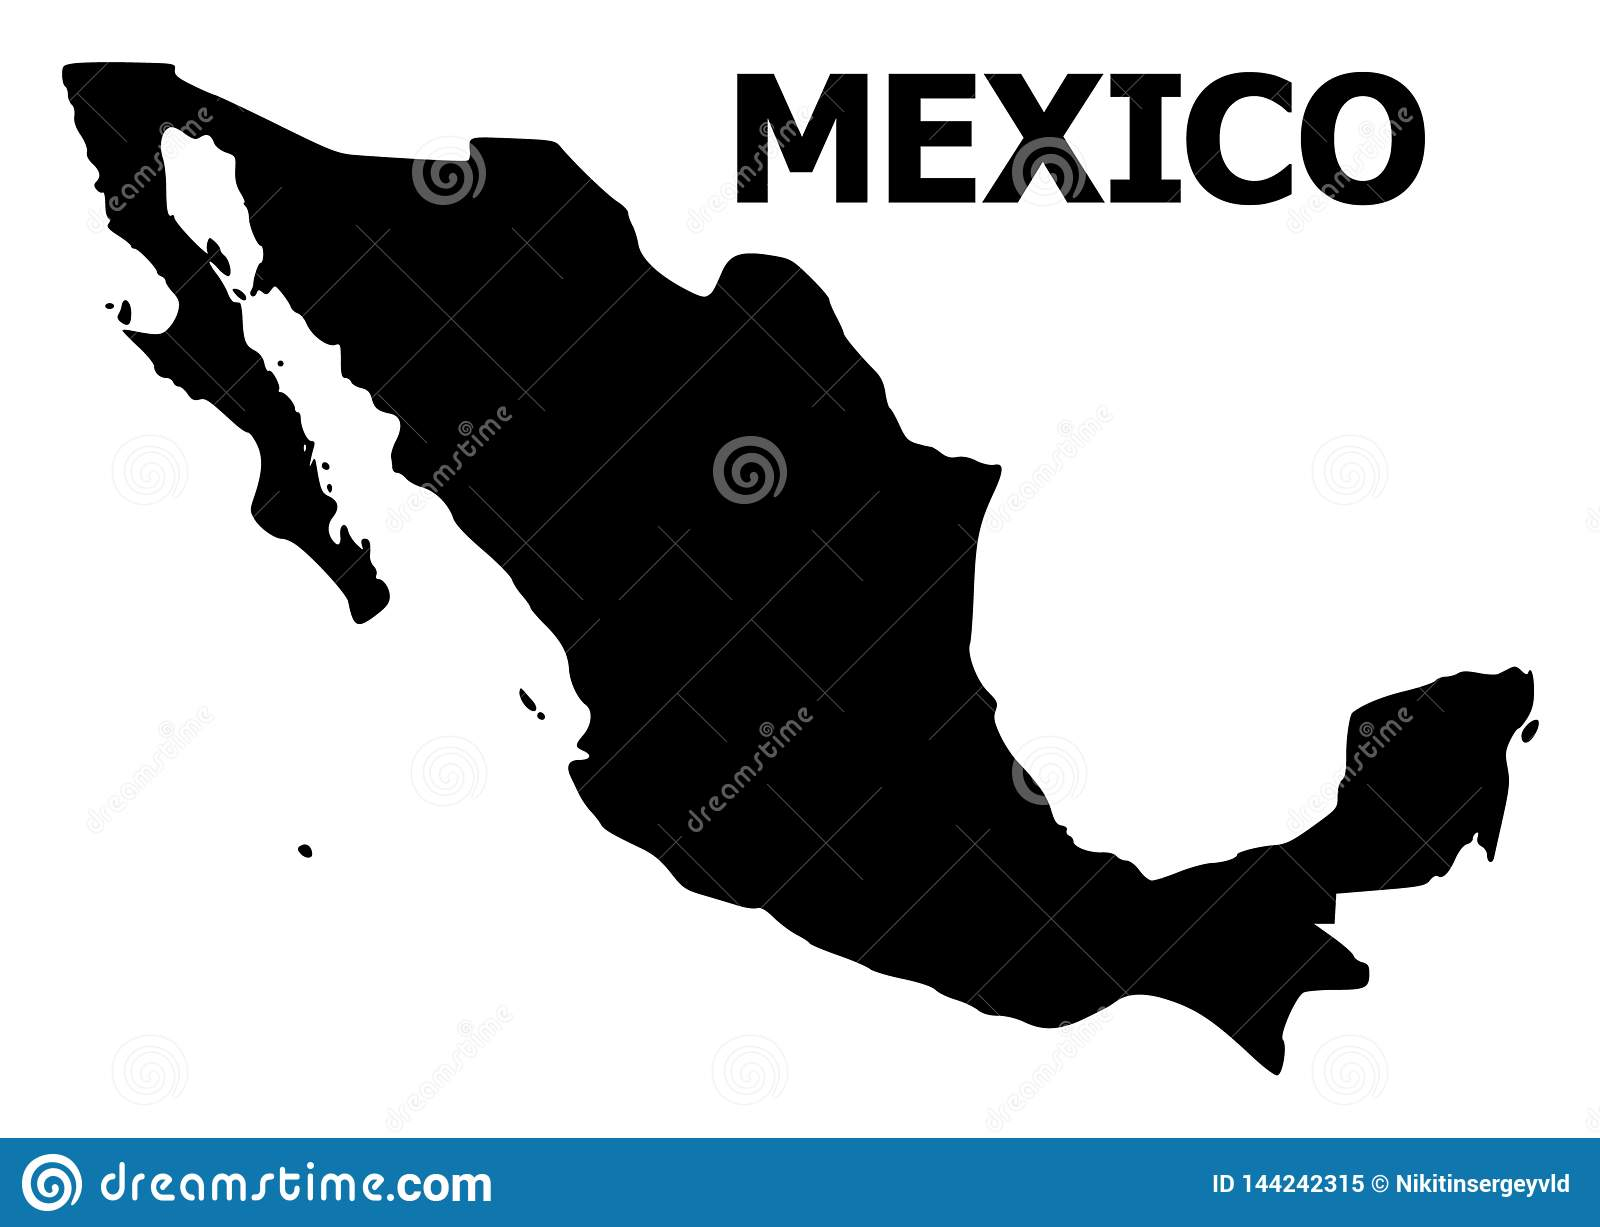 Vector Flat Map Of Mexico With Name Stock Vector ... on homes in campeche mexico, simple turkey map, the country of mexico, simple singapore map, simple canada map, simple usa map, information on mexico, fotos de mexico, simple eastern europe map, simple arizona map, simple cuba map, simple street map clip art, black and white outline map mexico, simple germany map, simple mexico map green, spanish mexico, simple vietnam map,